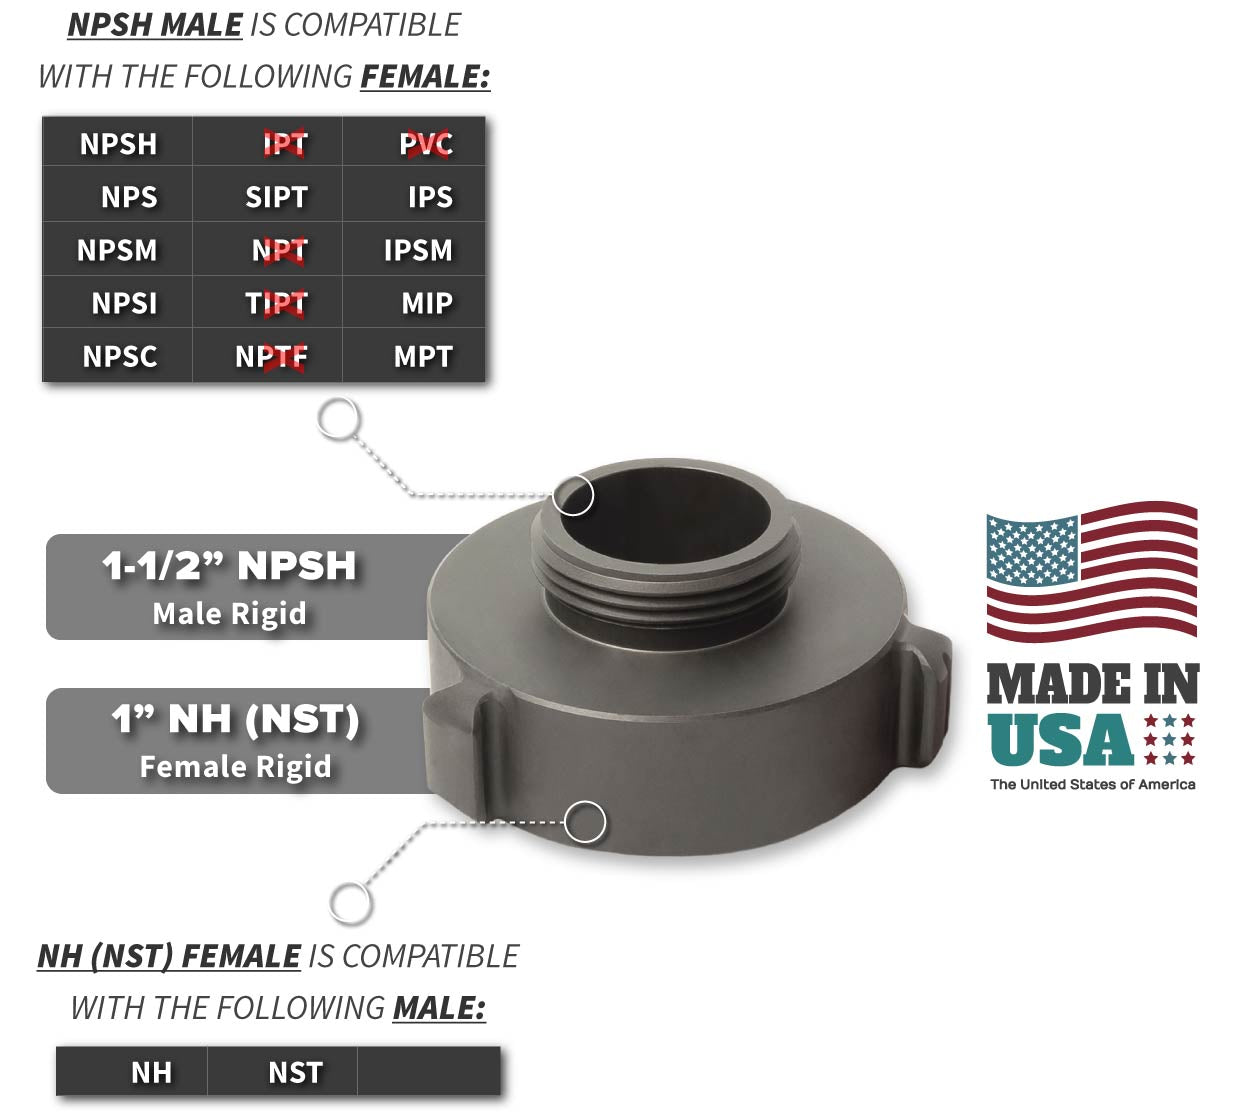 1 Inch NH-NST Female x 1.5 Inch NPSH Male Compatibility Thread Chart